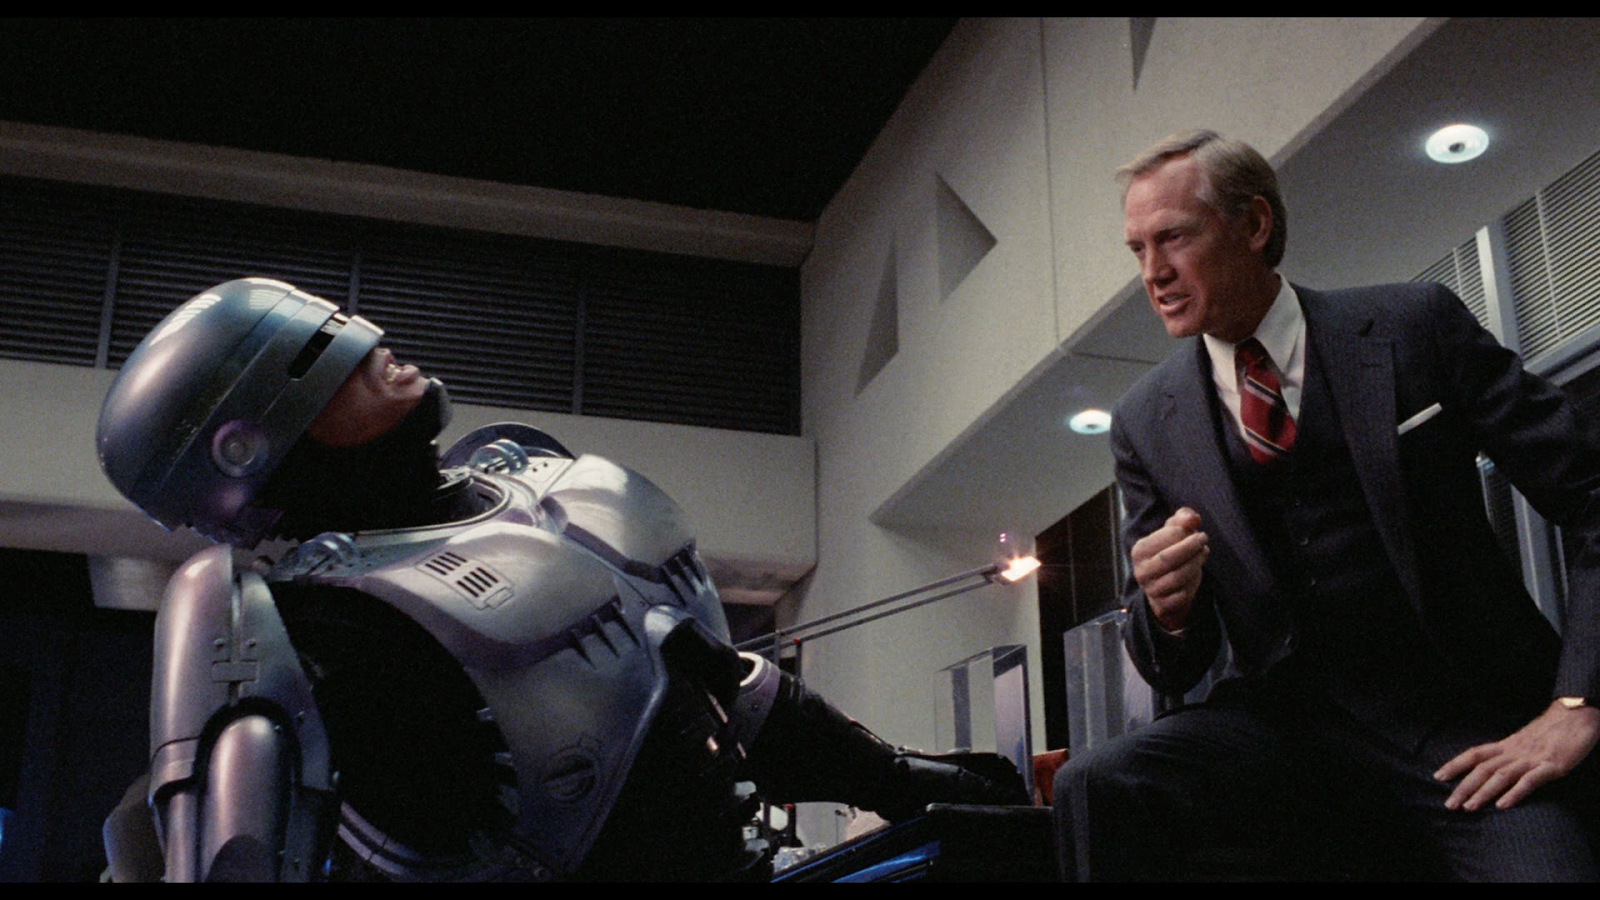 RoboCop (1987)(Arrow Video) Blu-ray Review: The Basics